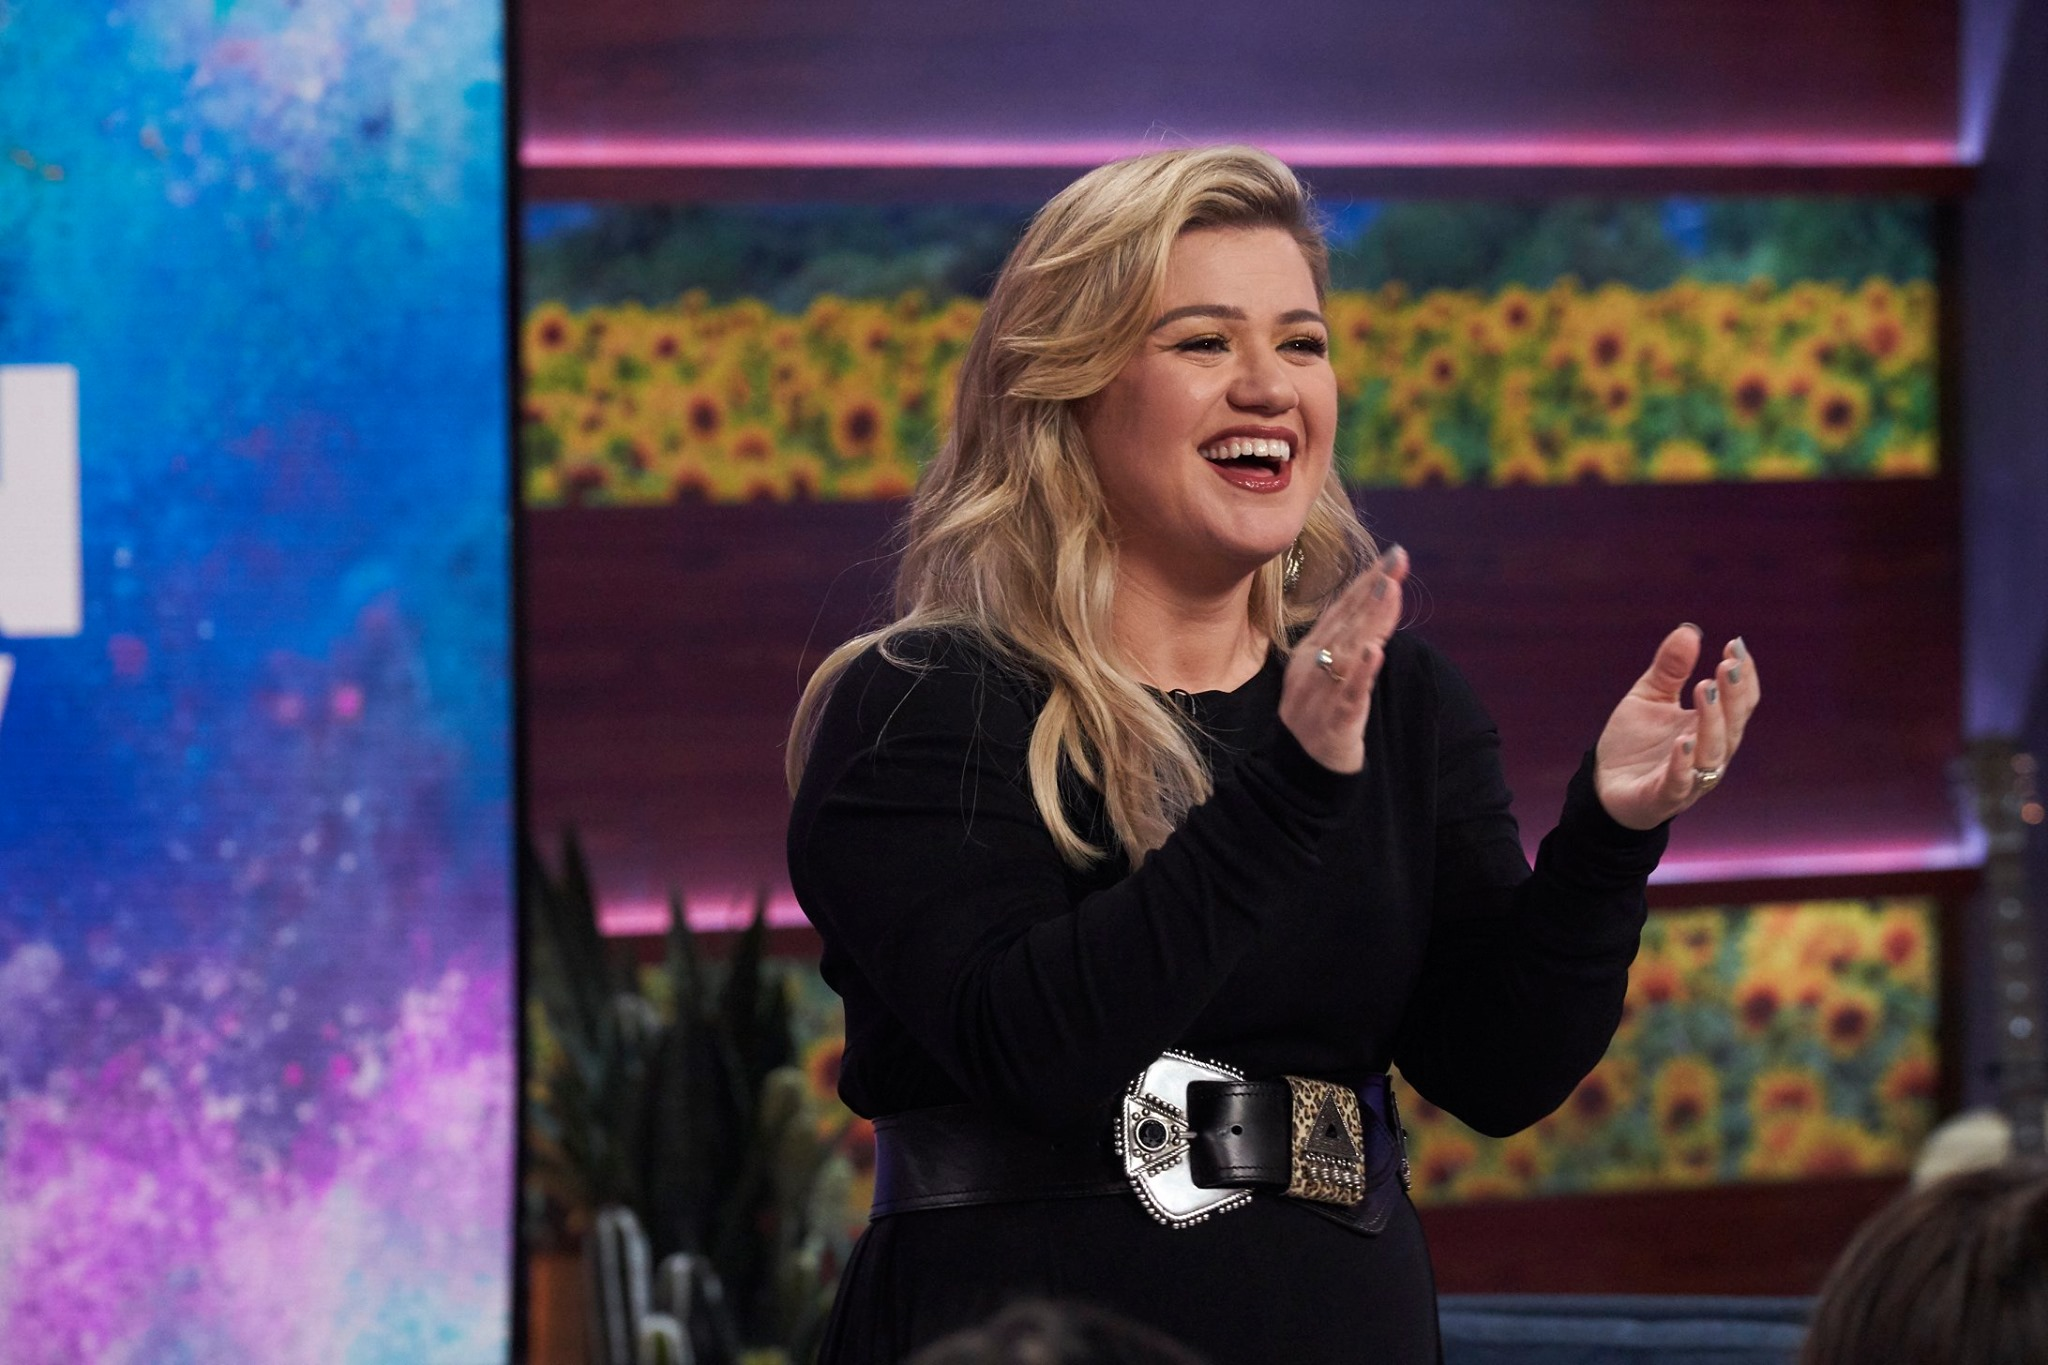 kelly clarkson clapping